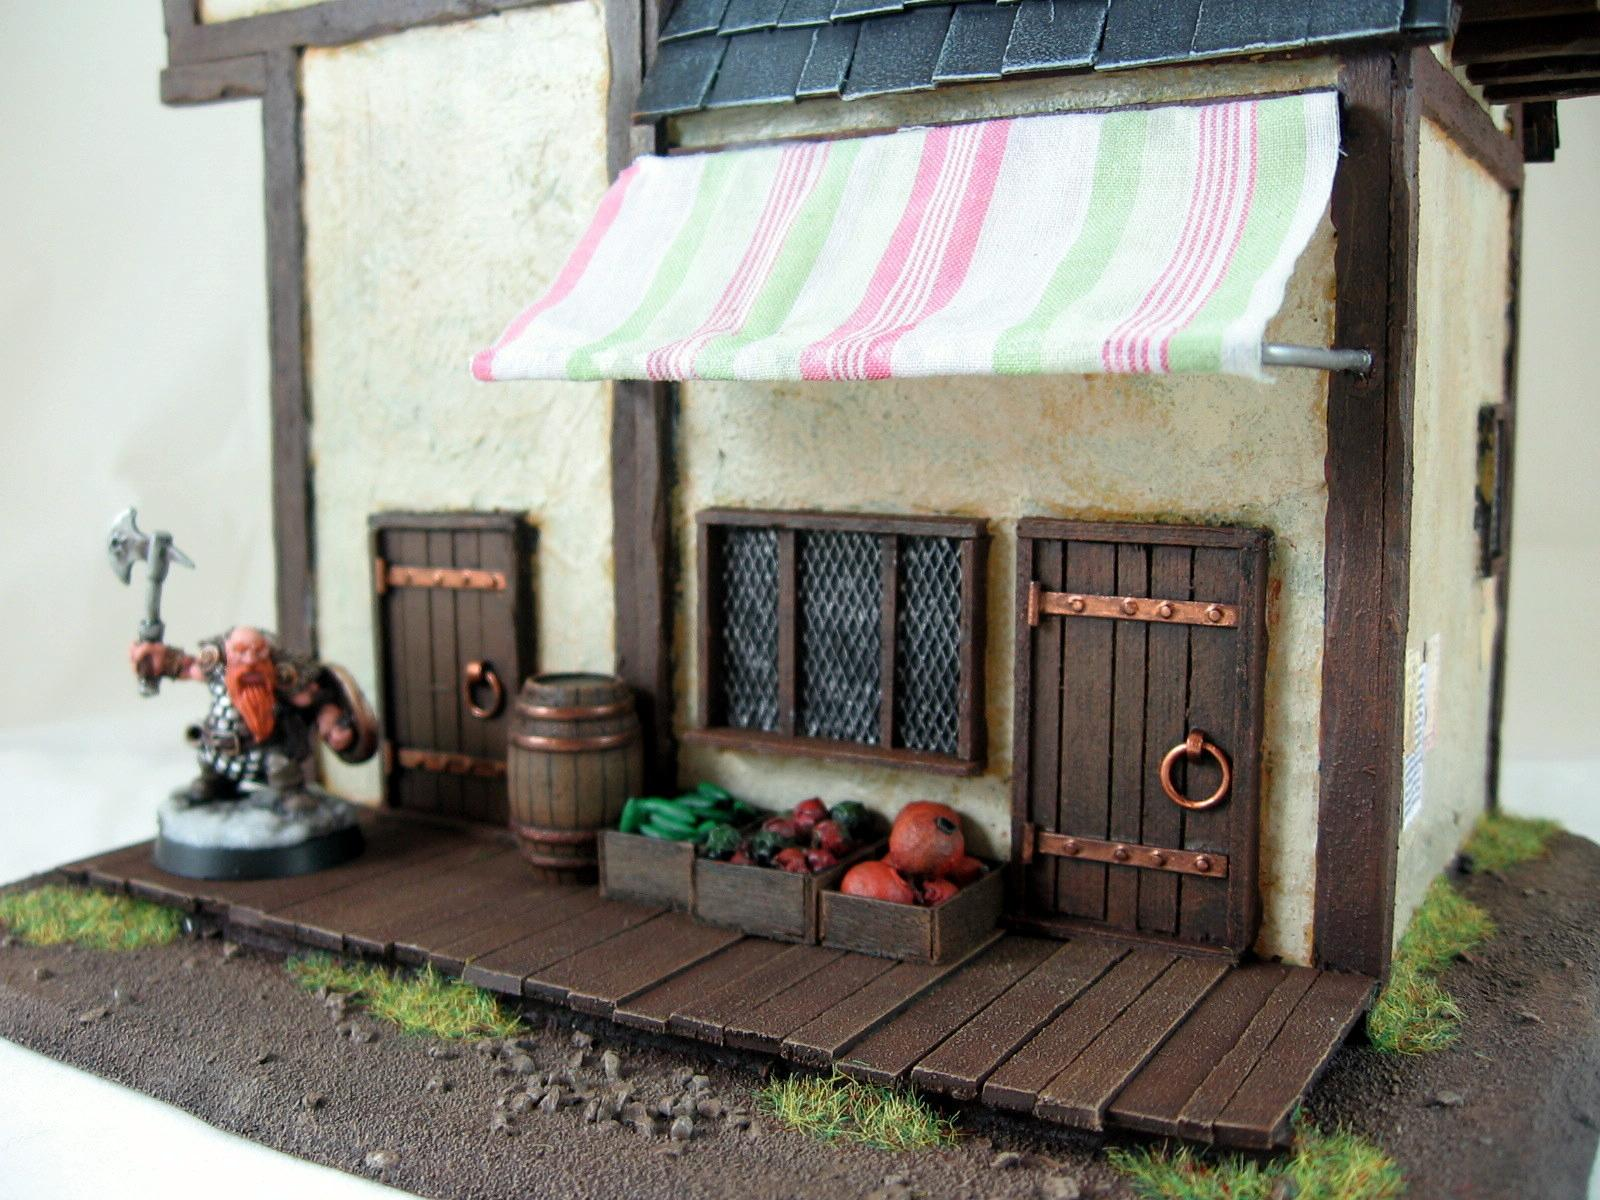 Buildings, Shop, Terrain, Warhammer Fantasy